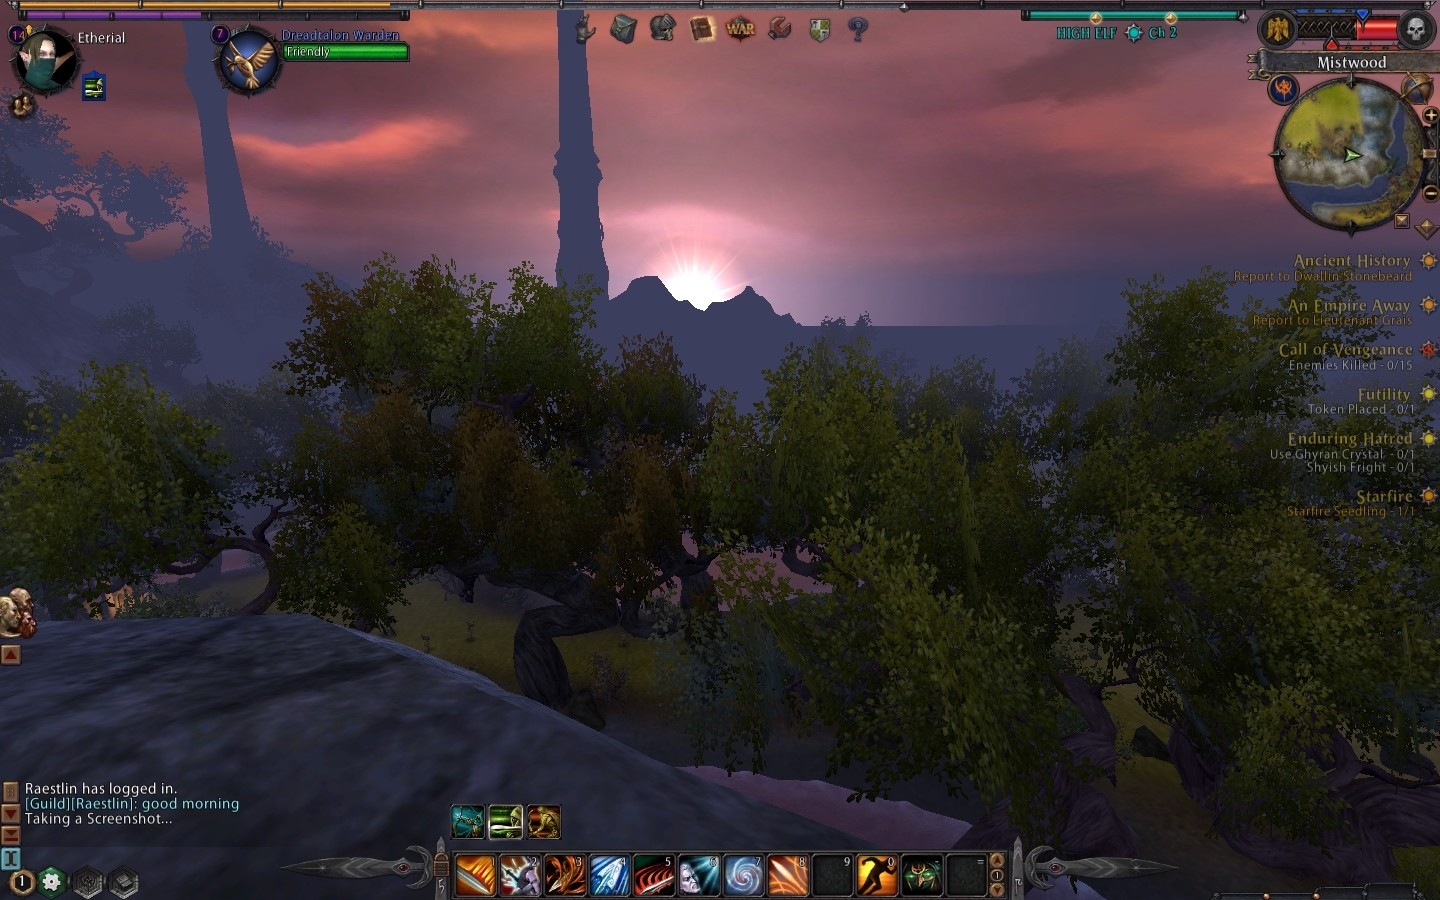 Warhammer Online: Age of Reckoning - A beautiful sunrise over the Blighted Isle